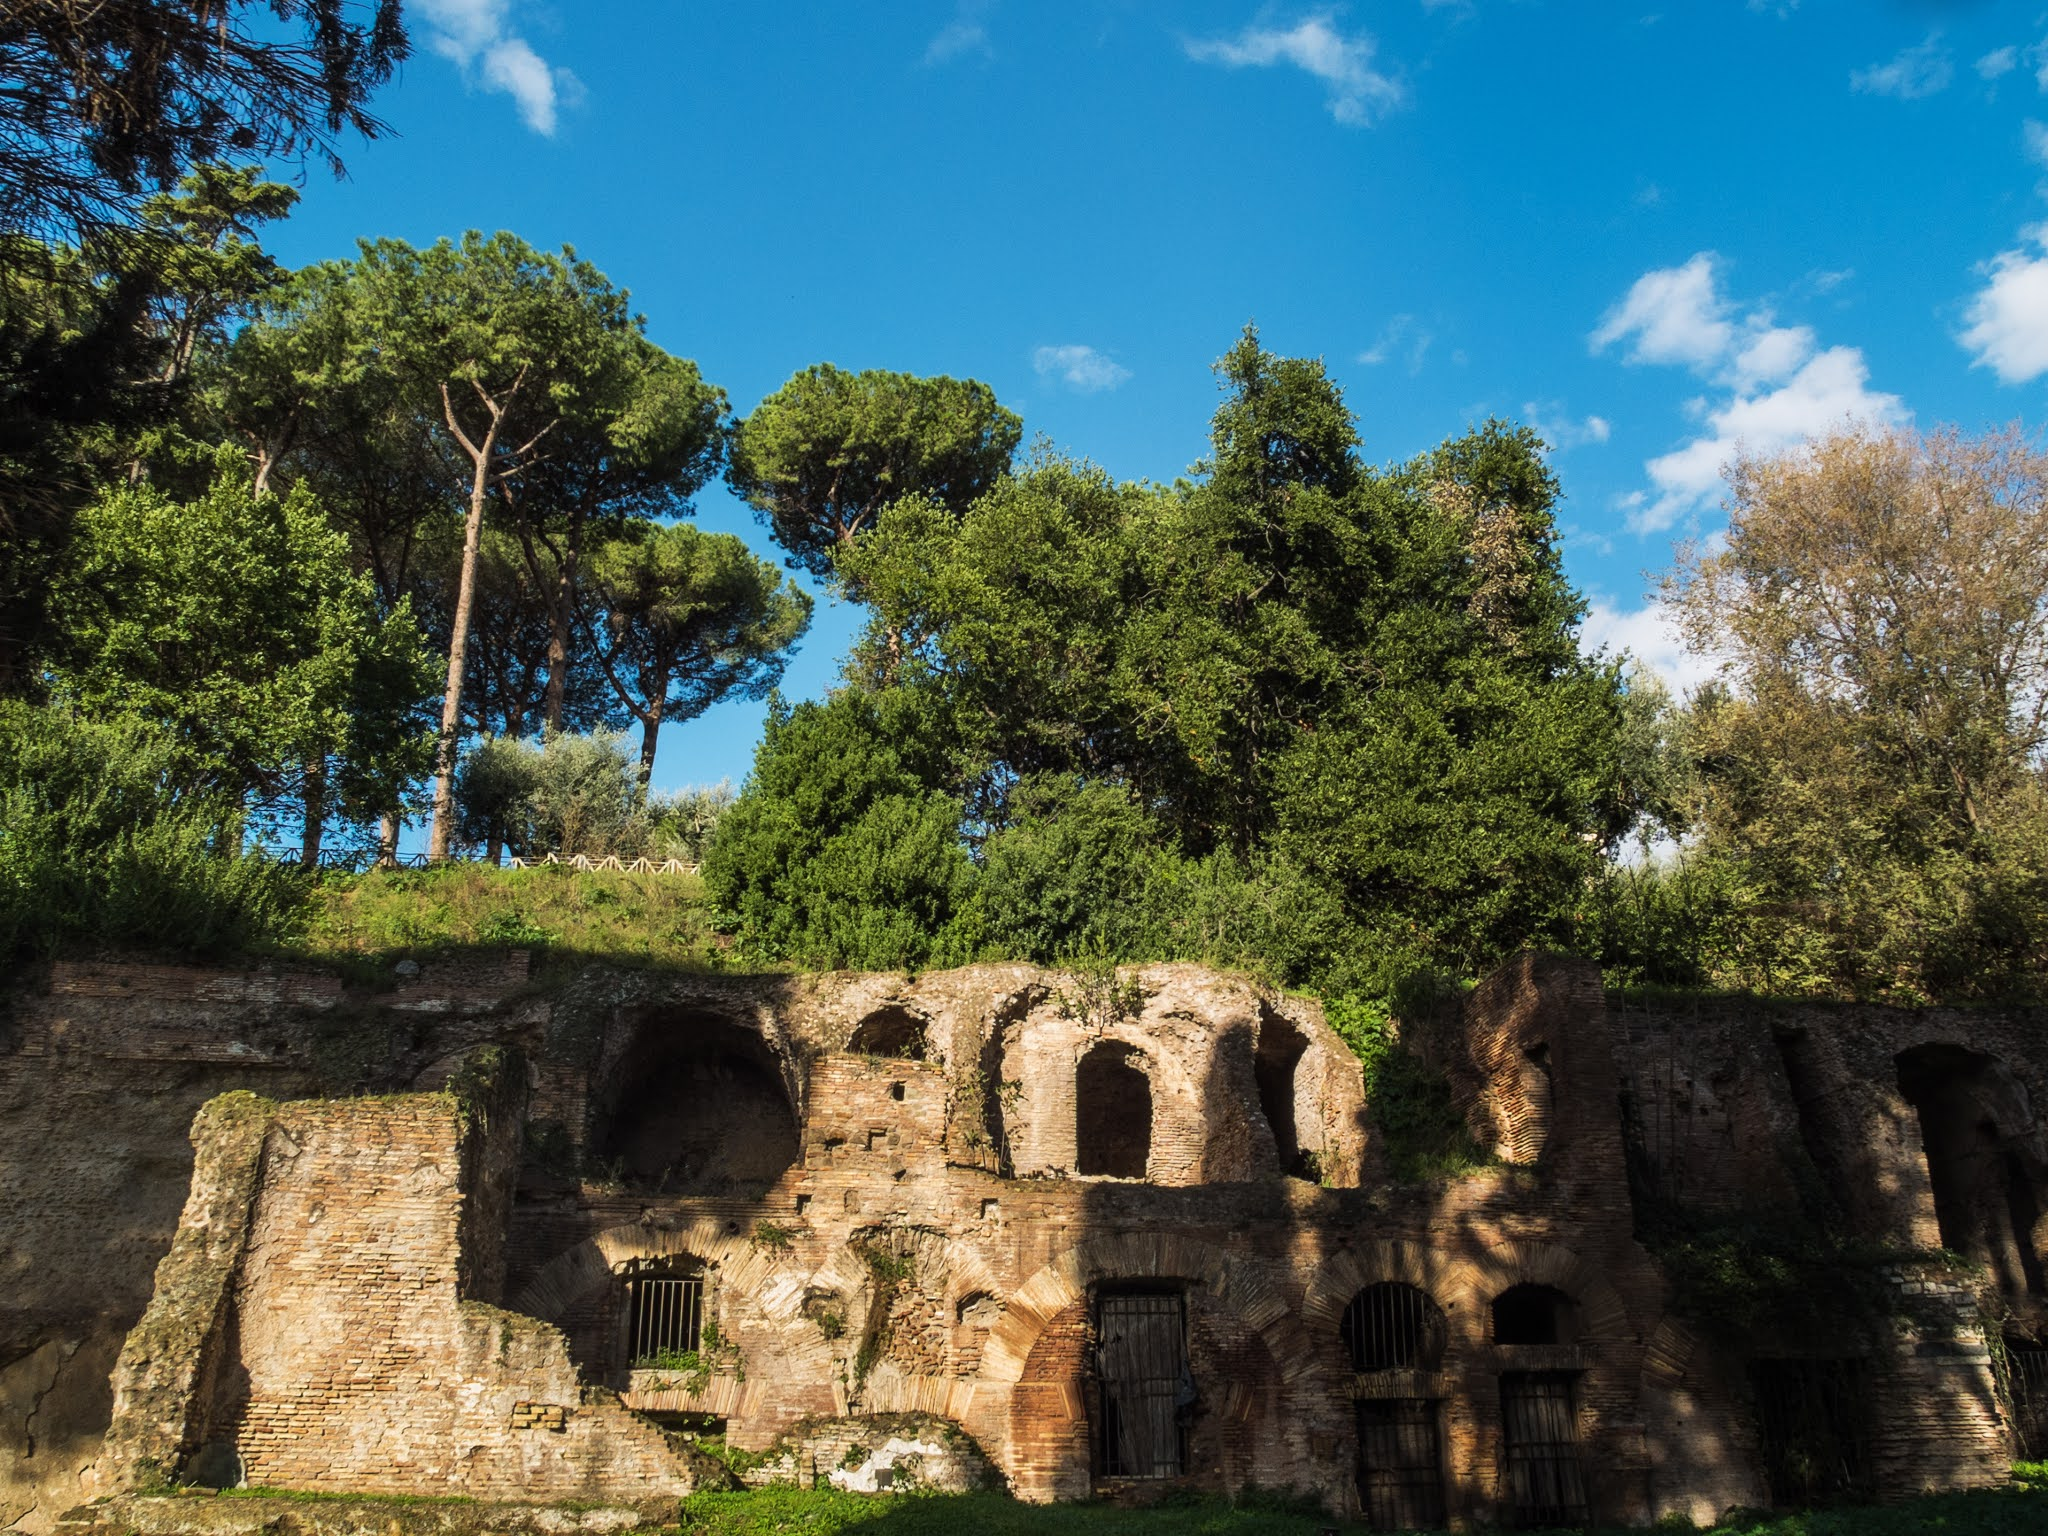 Umbrella pines above red brick ruins on Palatine hill on a sunny day.